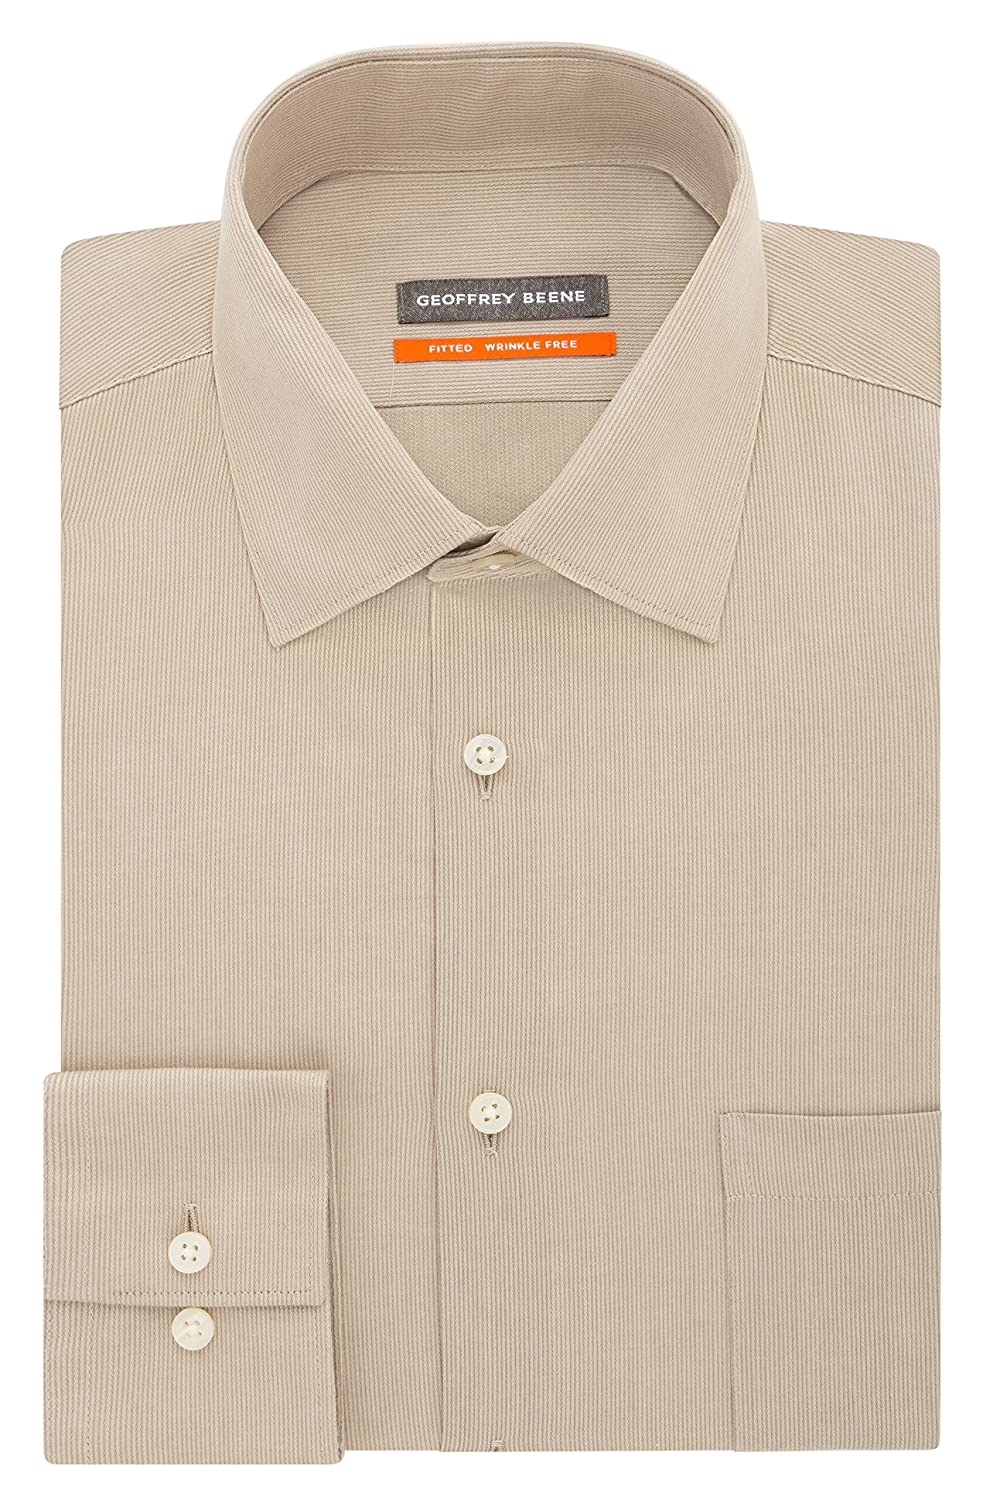 8402394c25 Geoffrey Beene Mens Textured Sateen Fitted Solid Spread Collar Dress Shirt   Amazon.ca  Clothing   Accessories